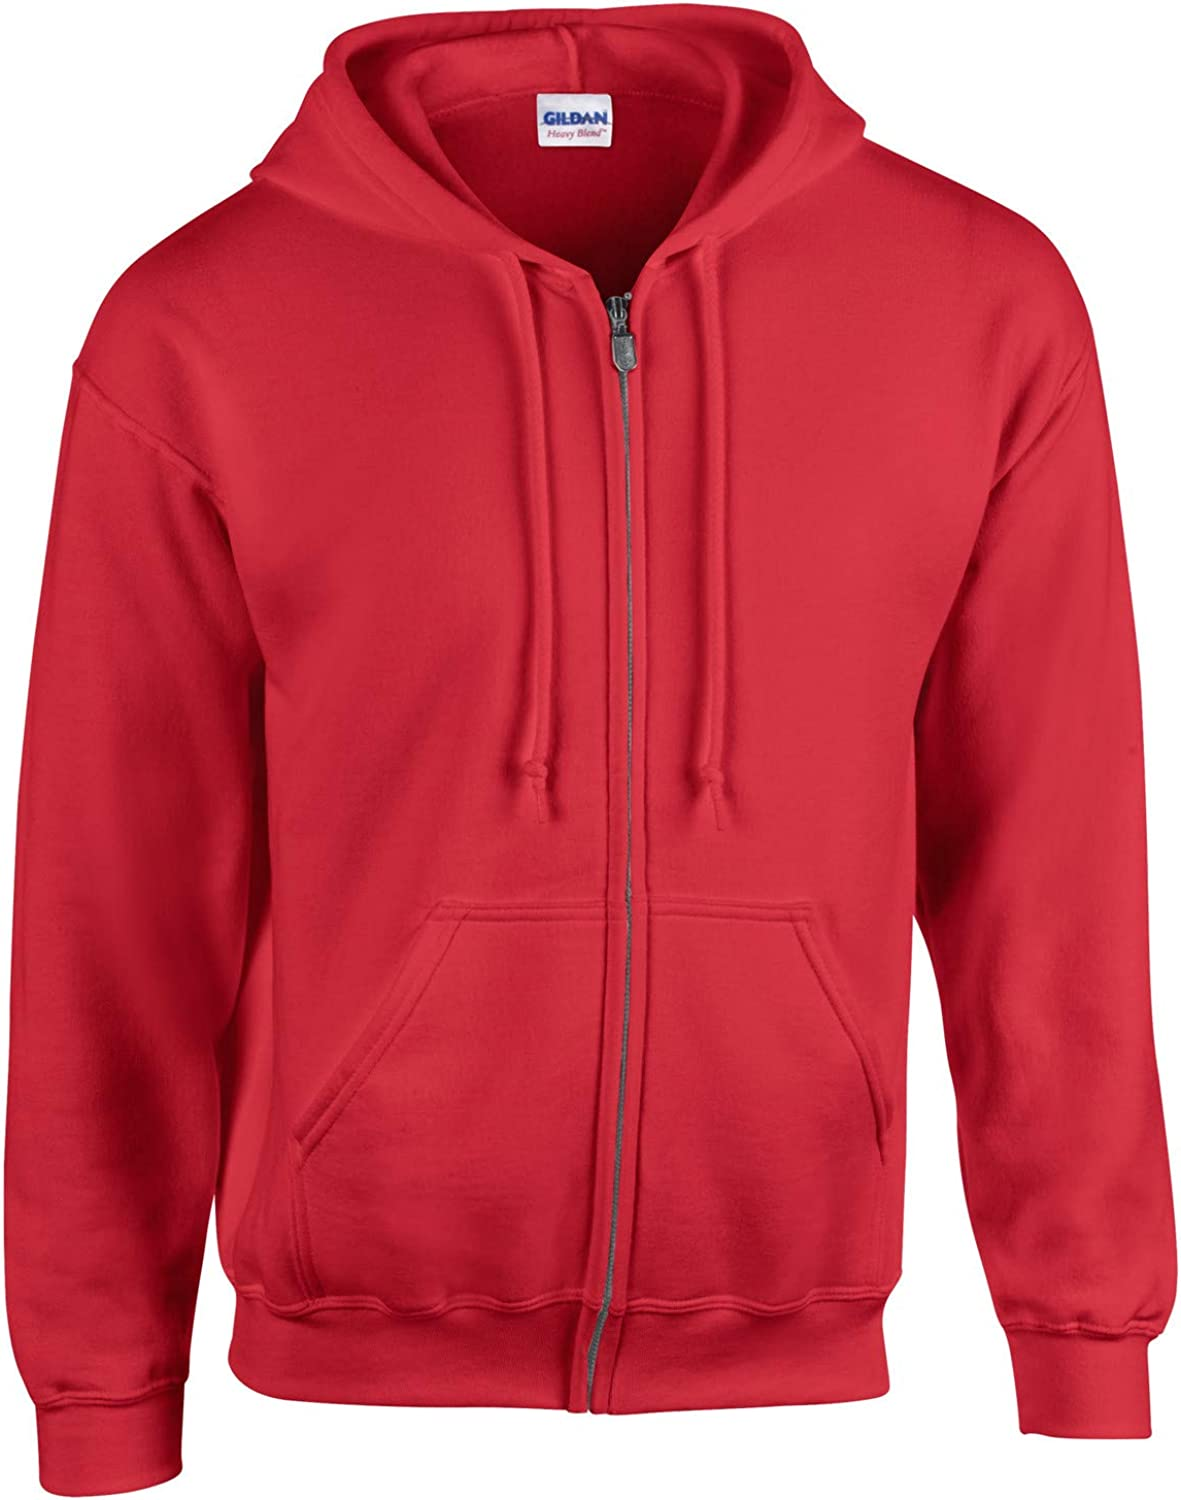 Hooded Zipper Cardigan Plus Size Casual Men's Sweater (Red, l)